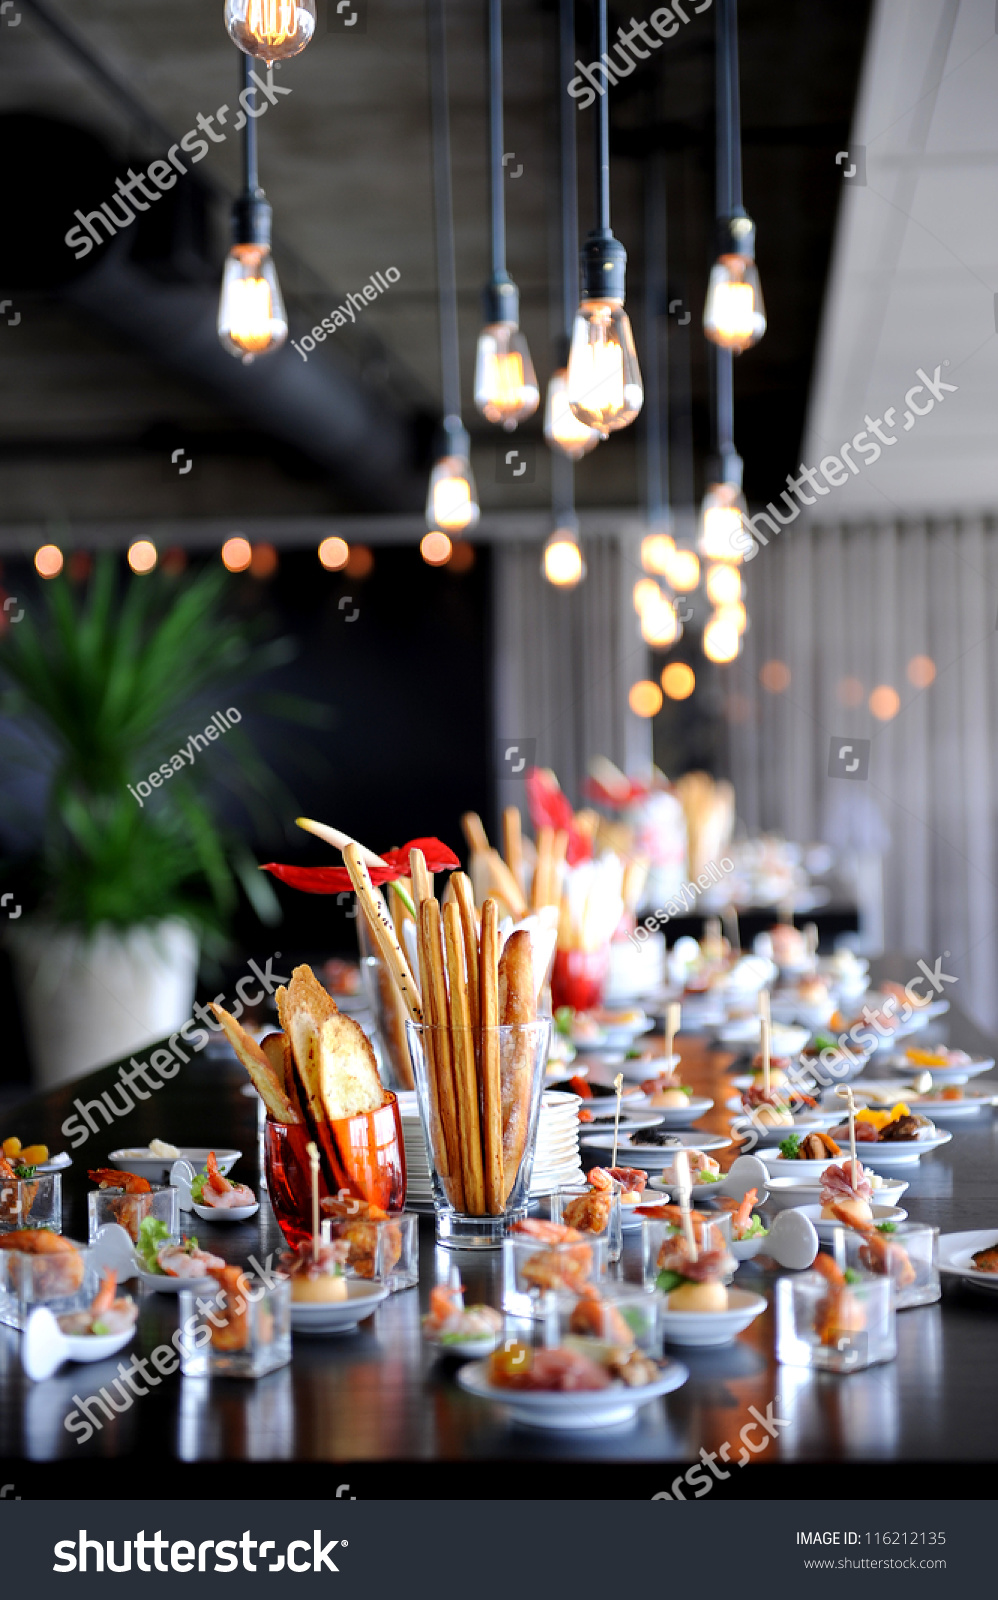 Restaurant cocktail tables cocktail party stock photo for Cocktail tables party